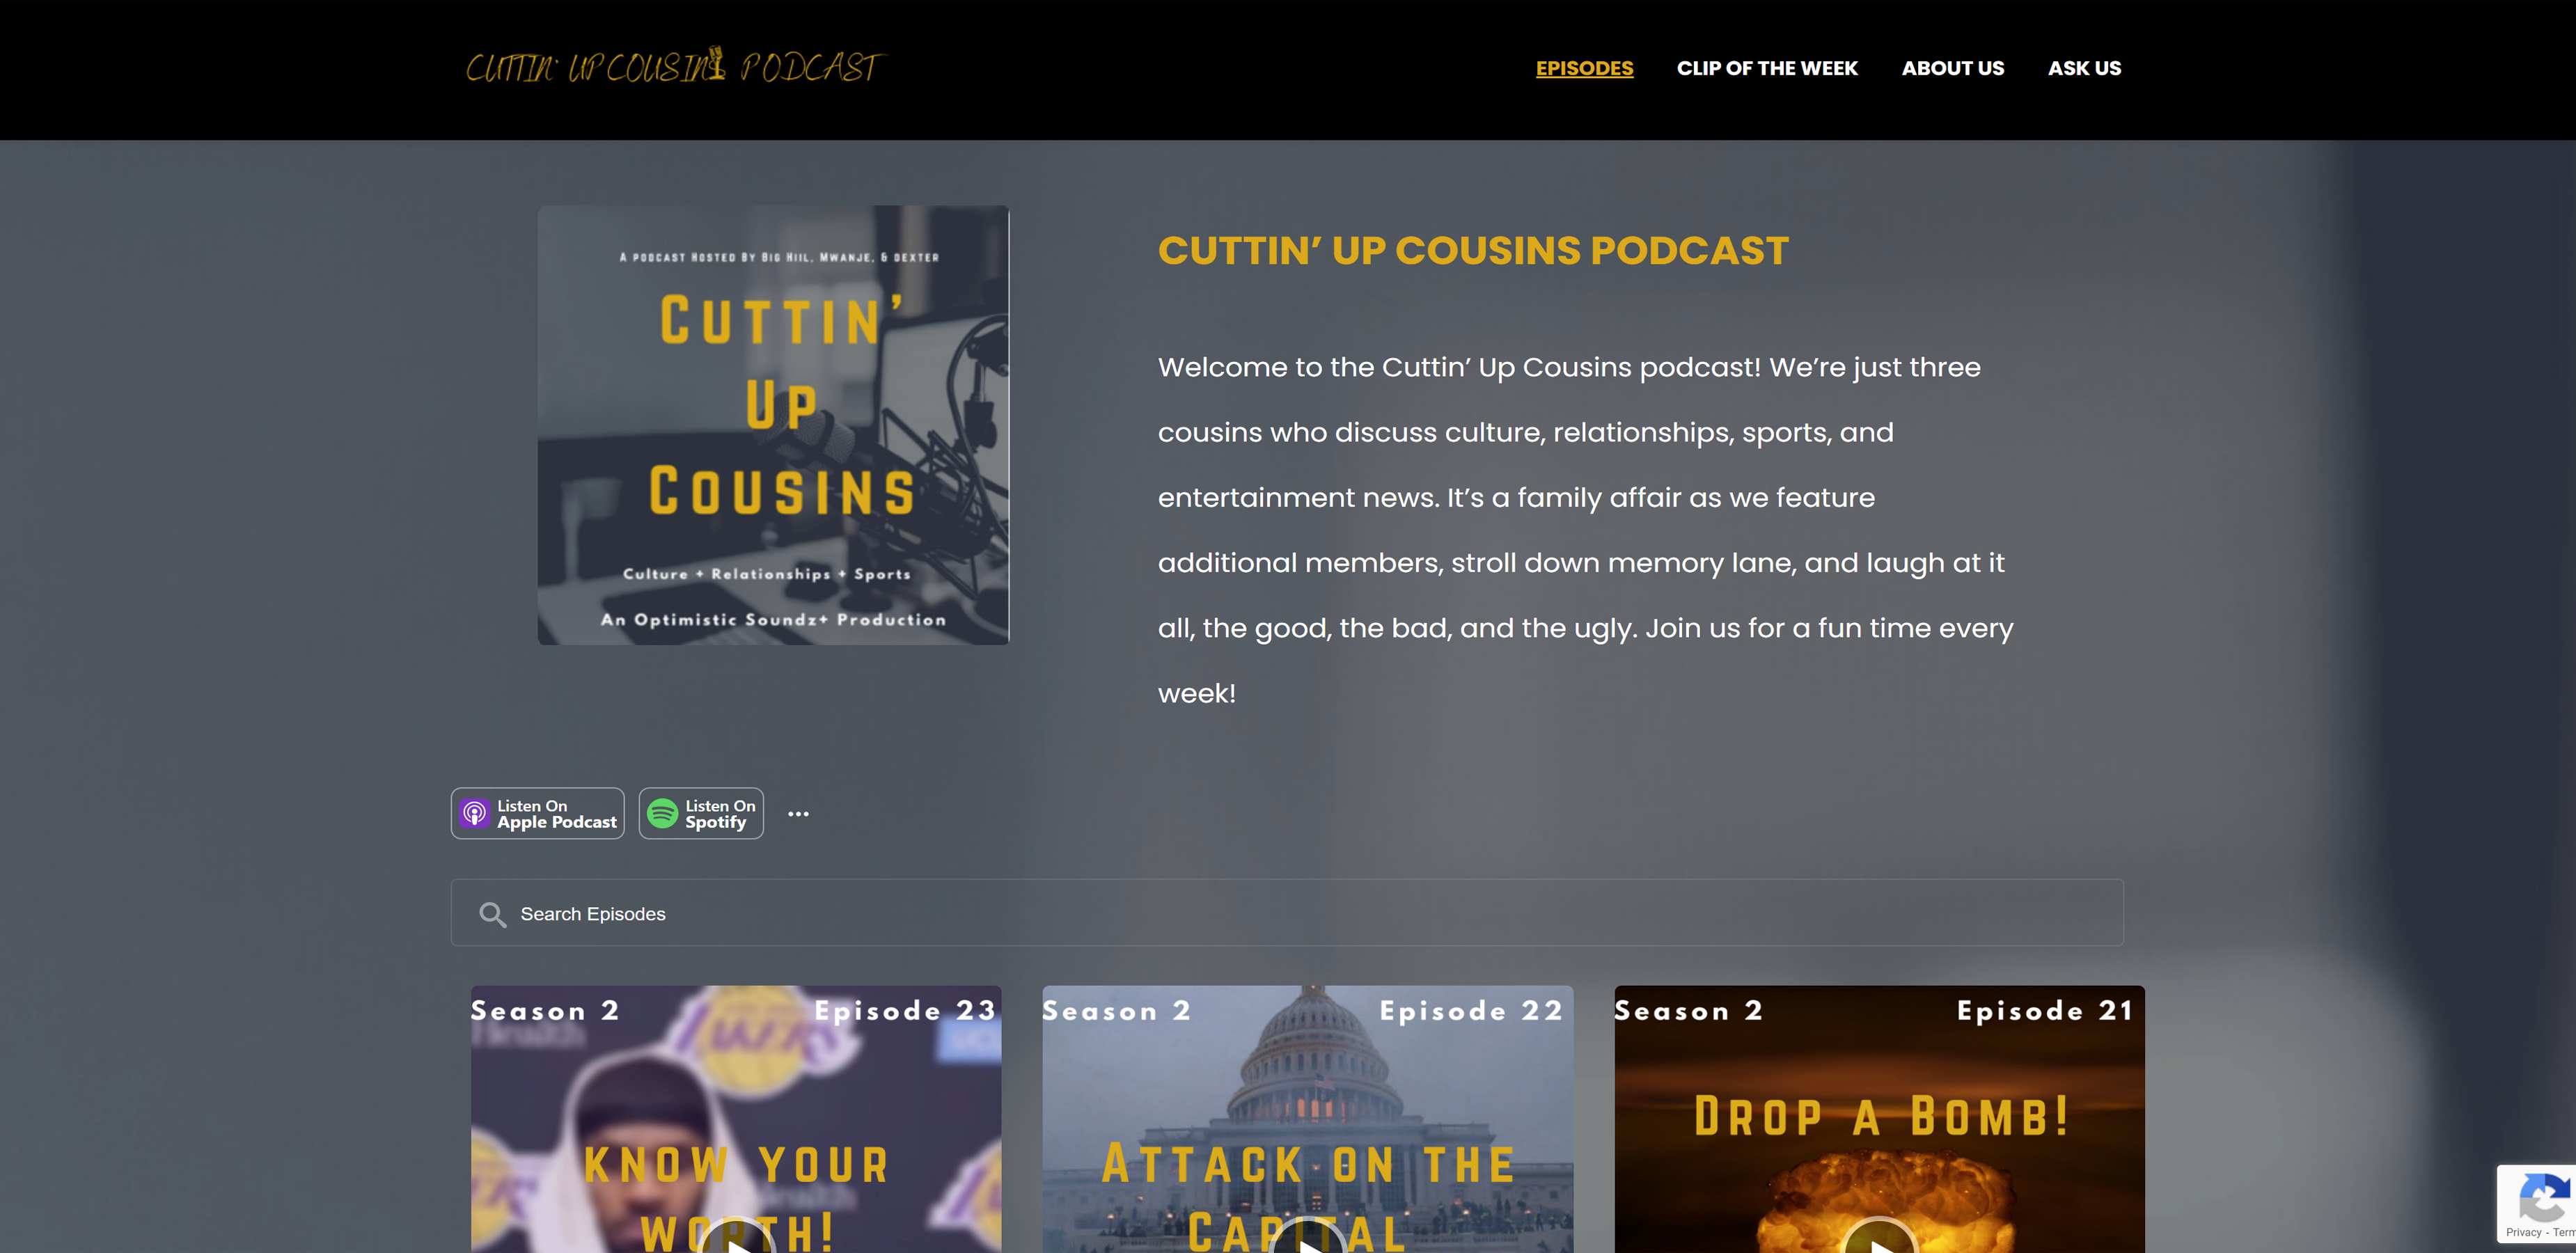 Cuttin' Up Cousins Podcast